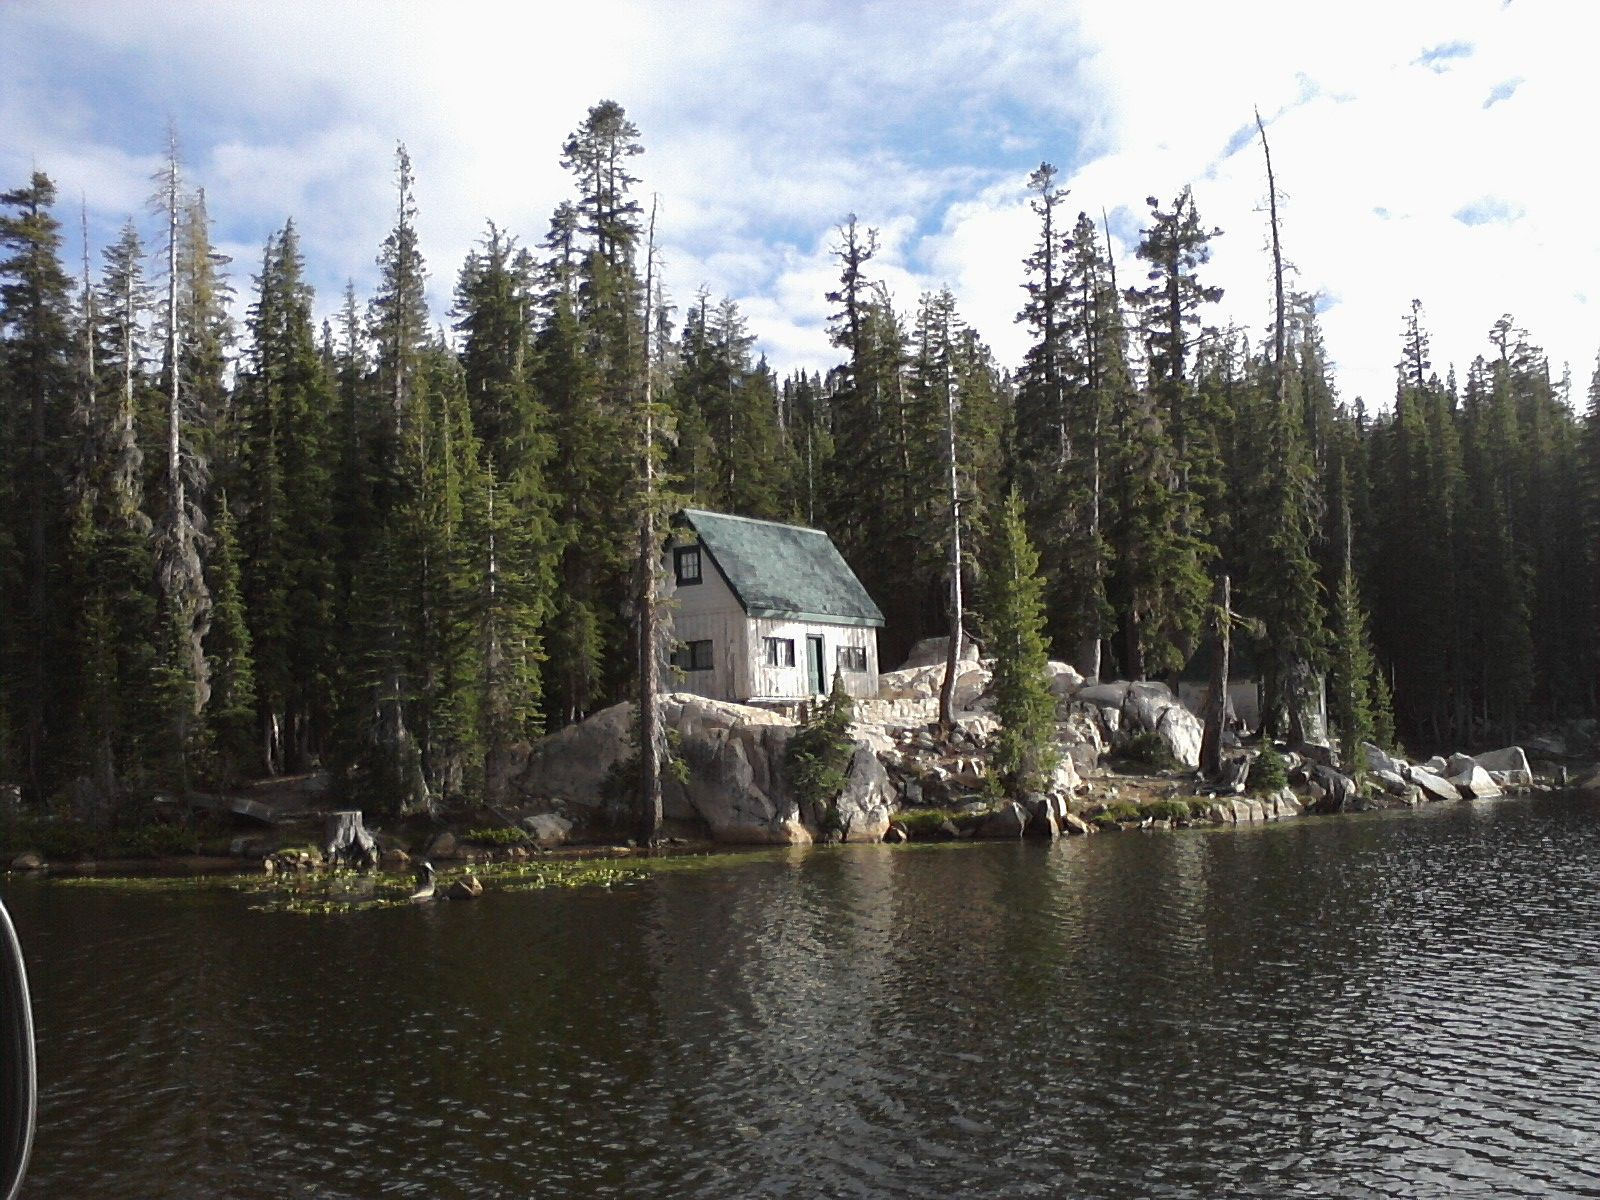 Charming old fishing cabin at mosquito lake in the high for Mosquito lake fishing